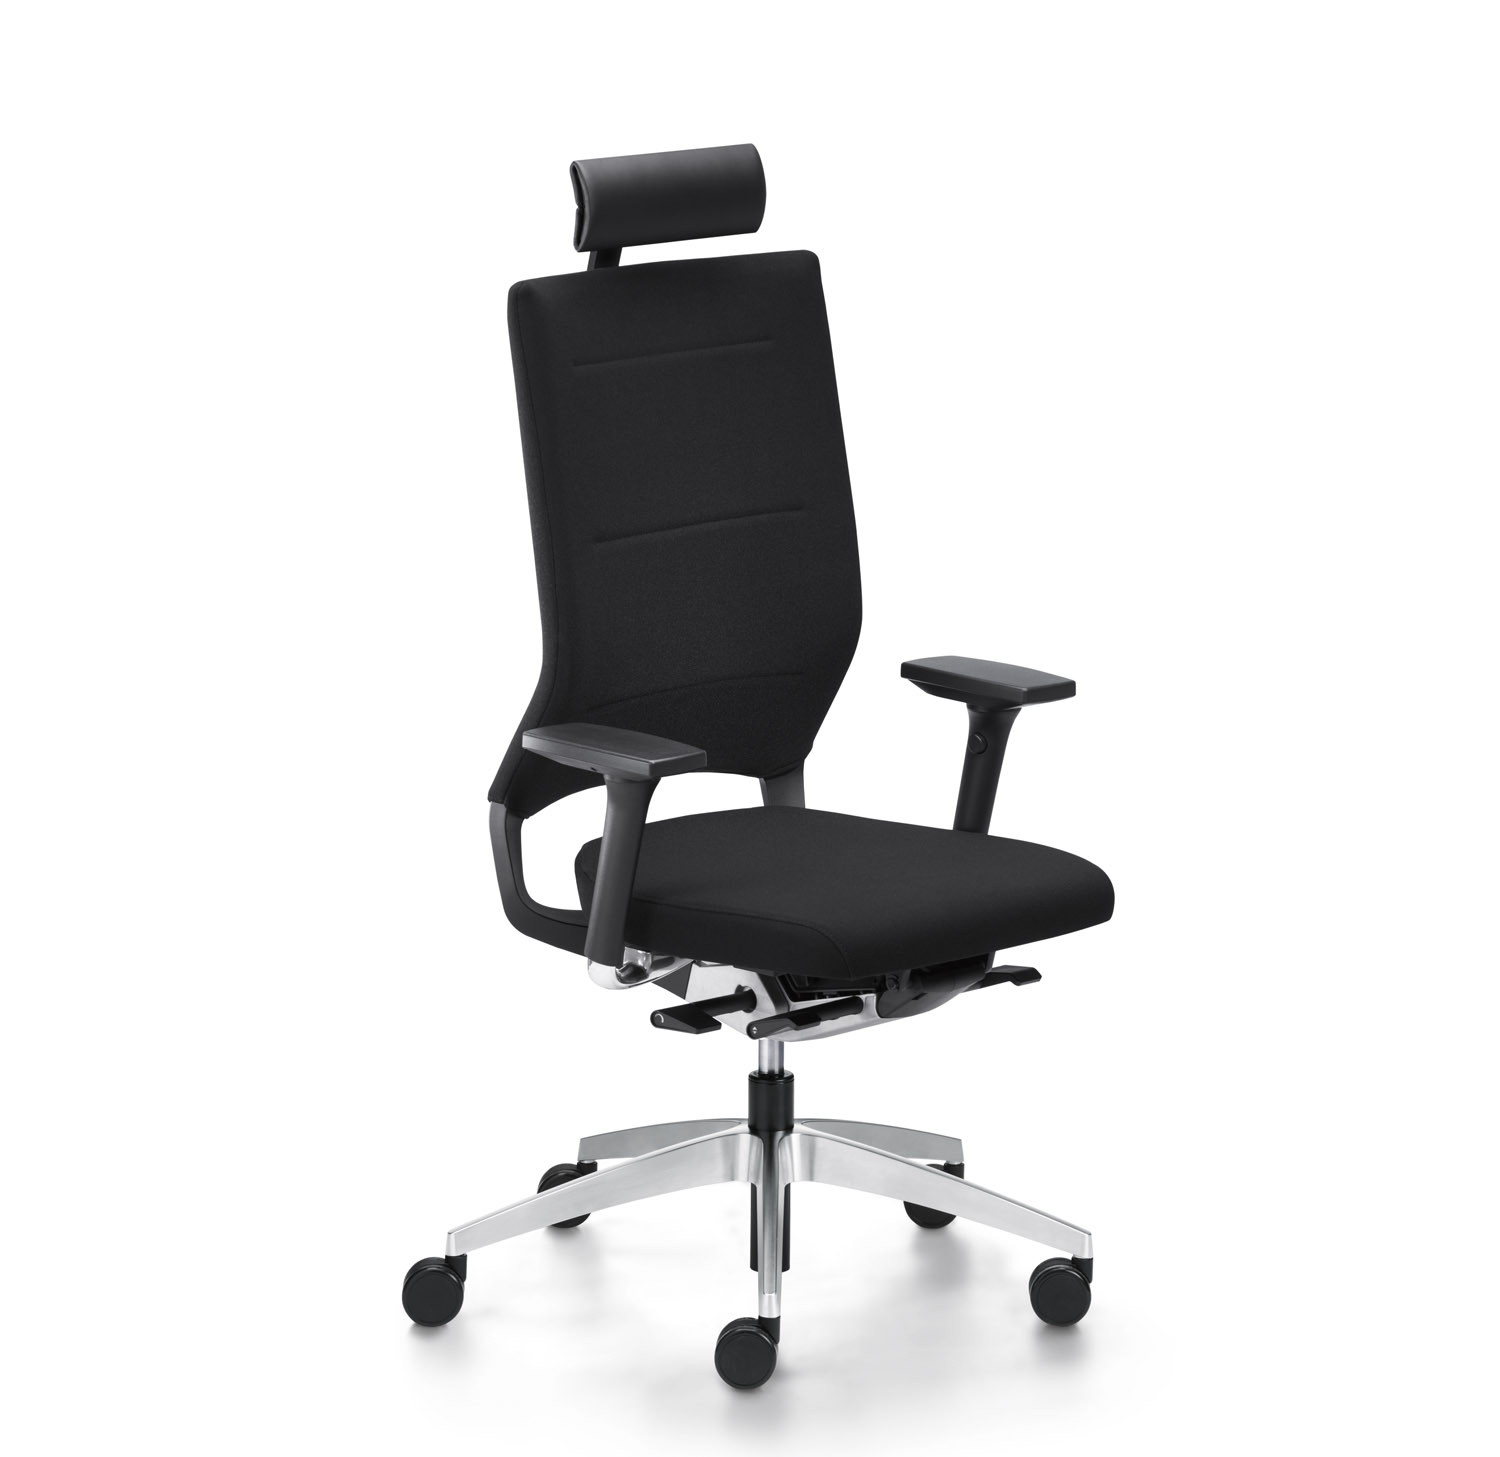 Quarterback Executive Chair with Headrest